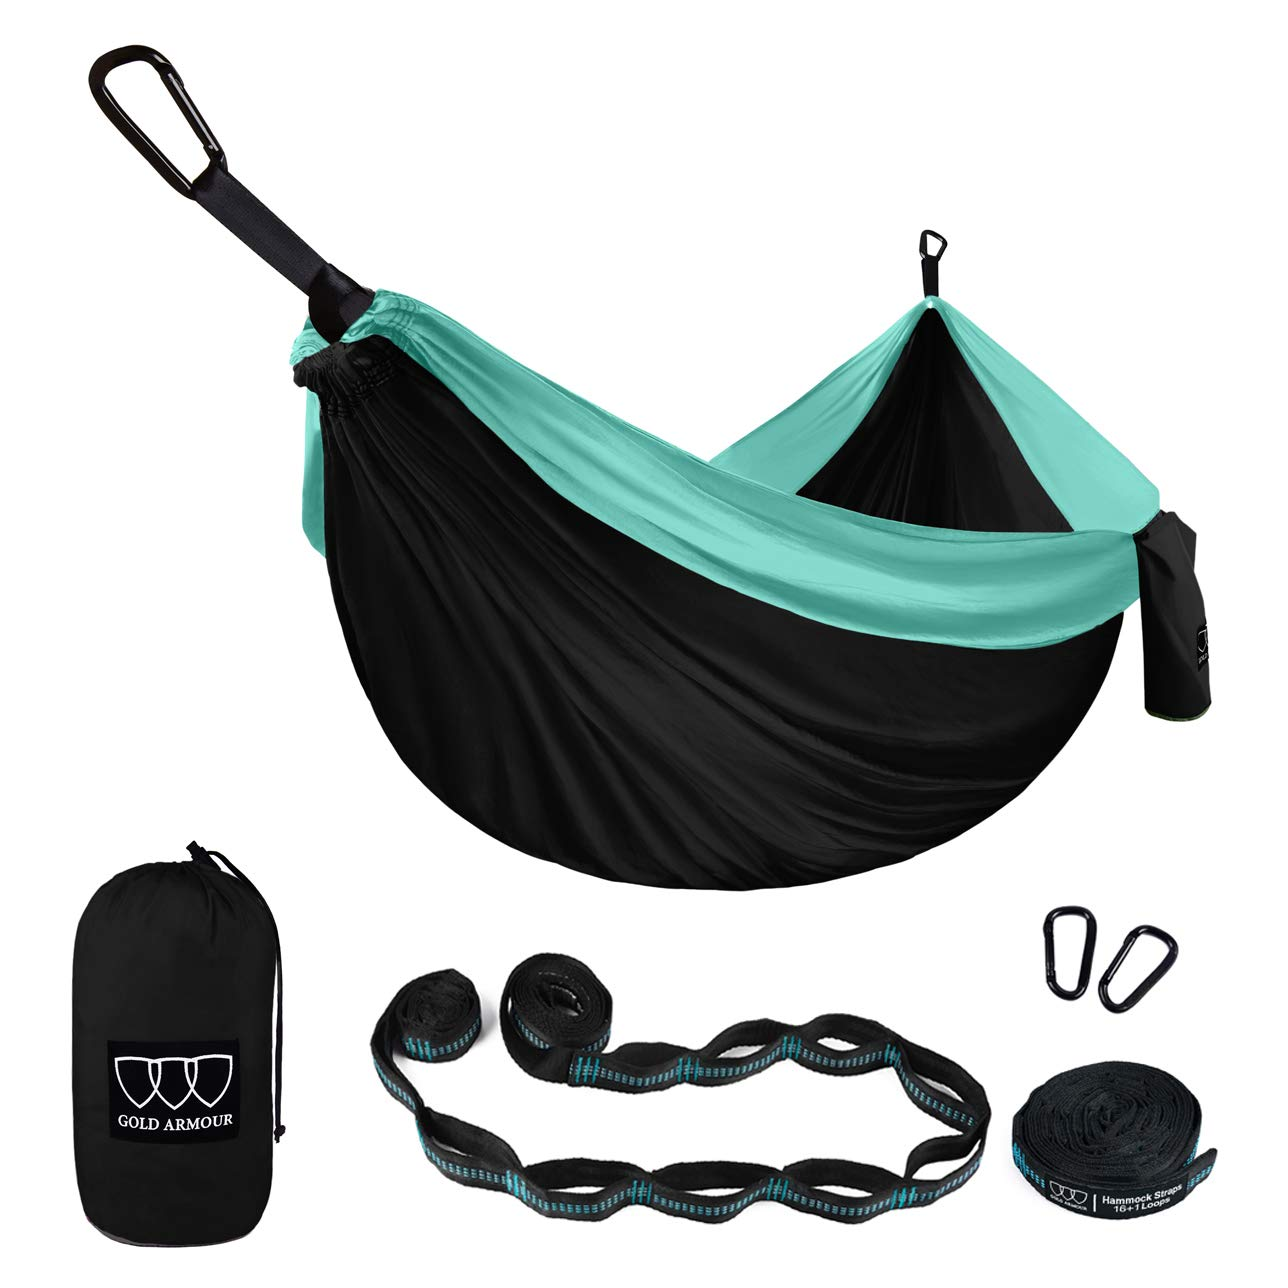 Gold Armour Camping Hammock - XL Double Parachute Hammock (2 Tree Straps 16 LOOPS/10 FT Included) USA Brand Lightweight Nylon Mens Womens Kids, Best Camping Accessories Gear (Black and Seafoam) by Gold Armour